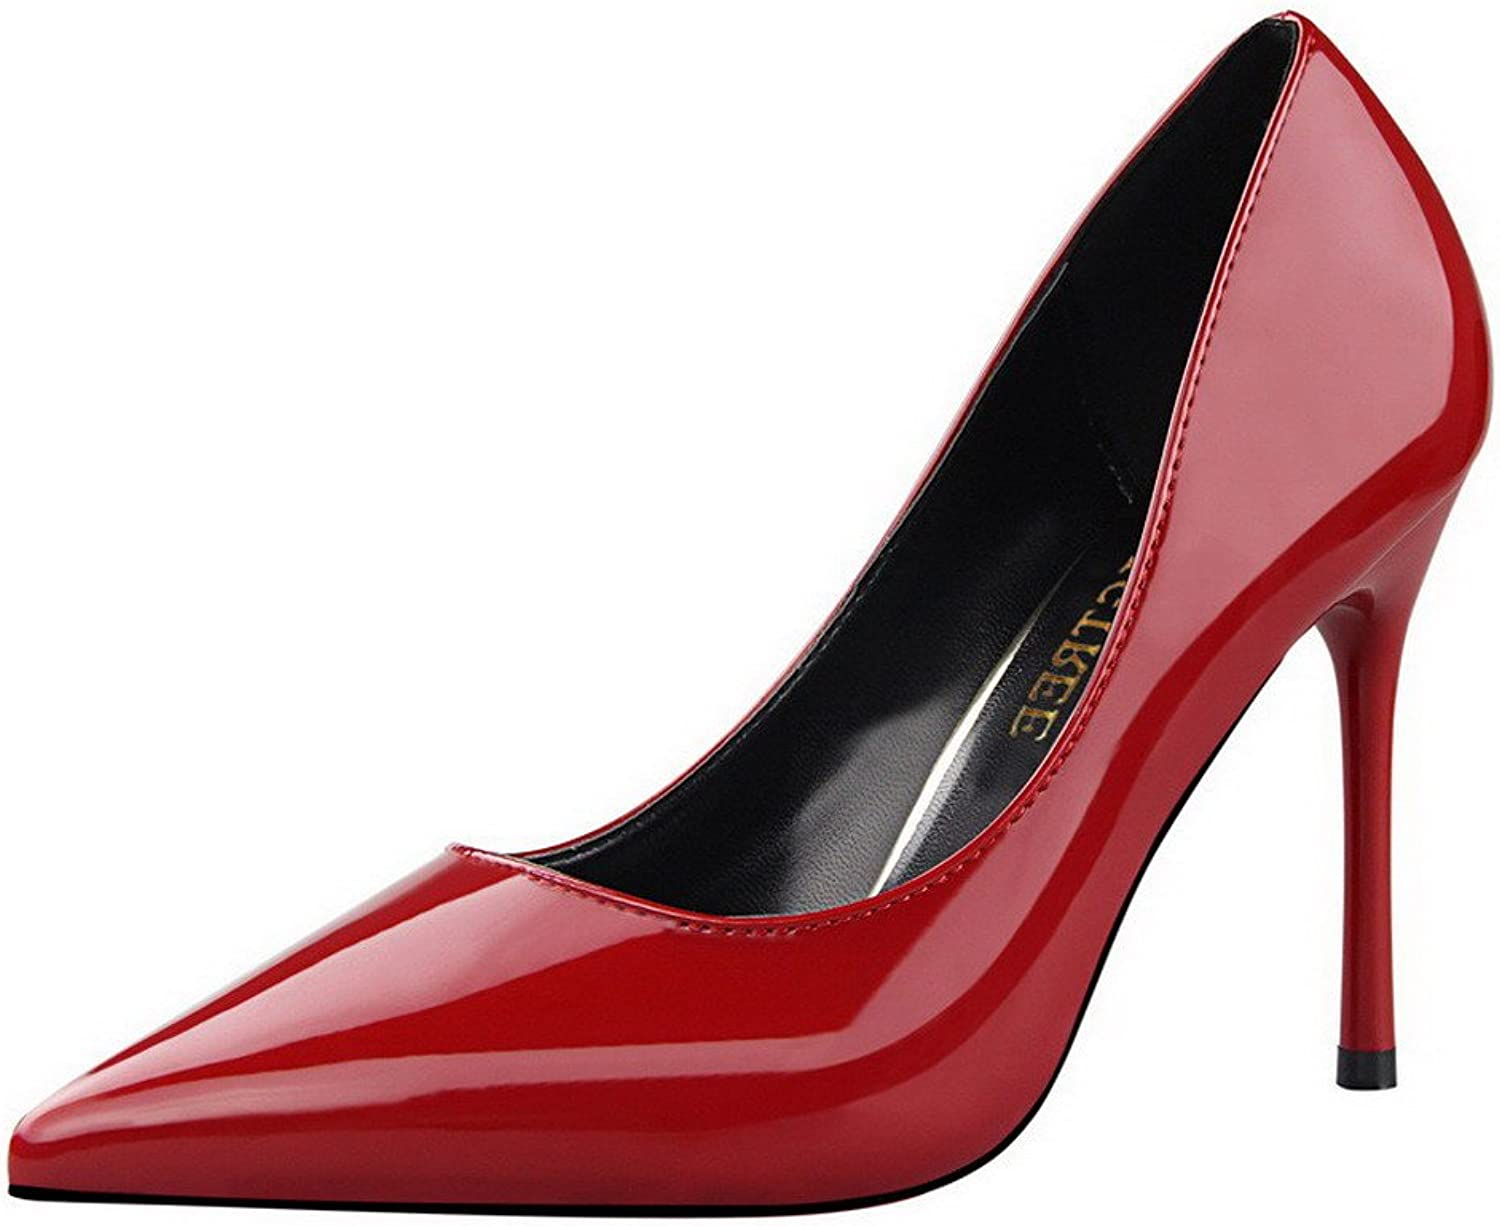 WeiPoot Women's PU Pull-On Closed-Toe High-Heels Solid Pumps-shoes, Red, 39